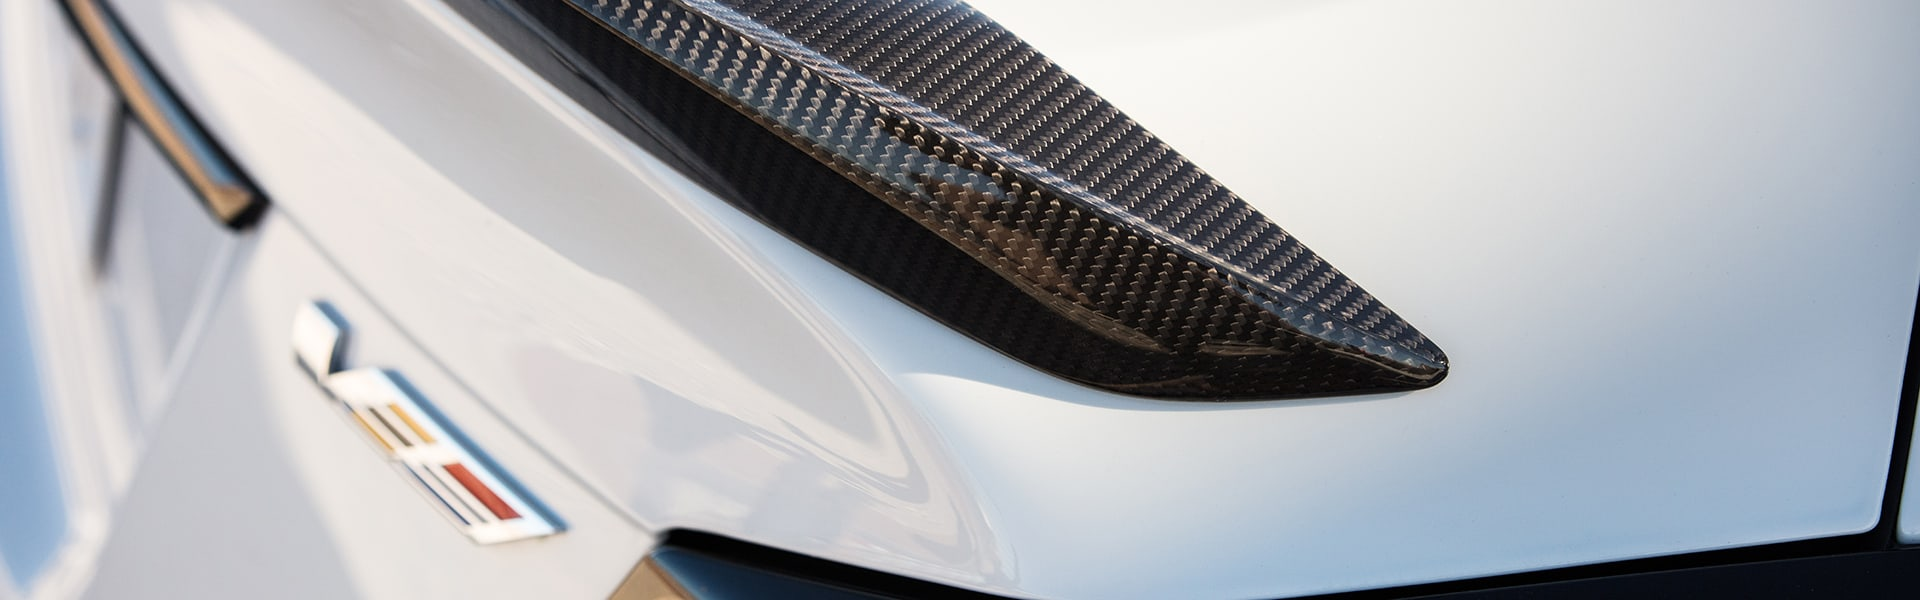 2022 Cadillac CT4-V Blackwing spoiler